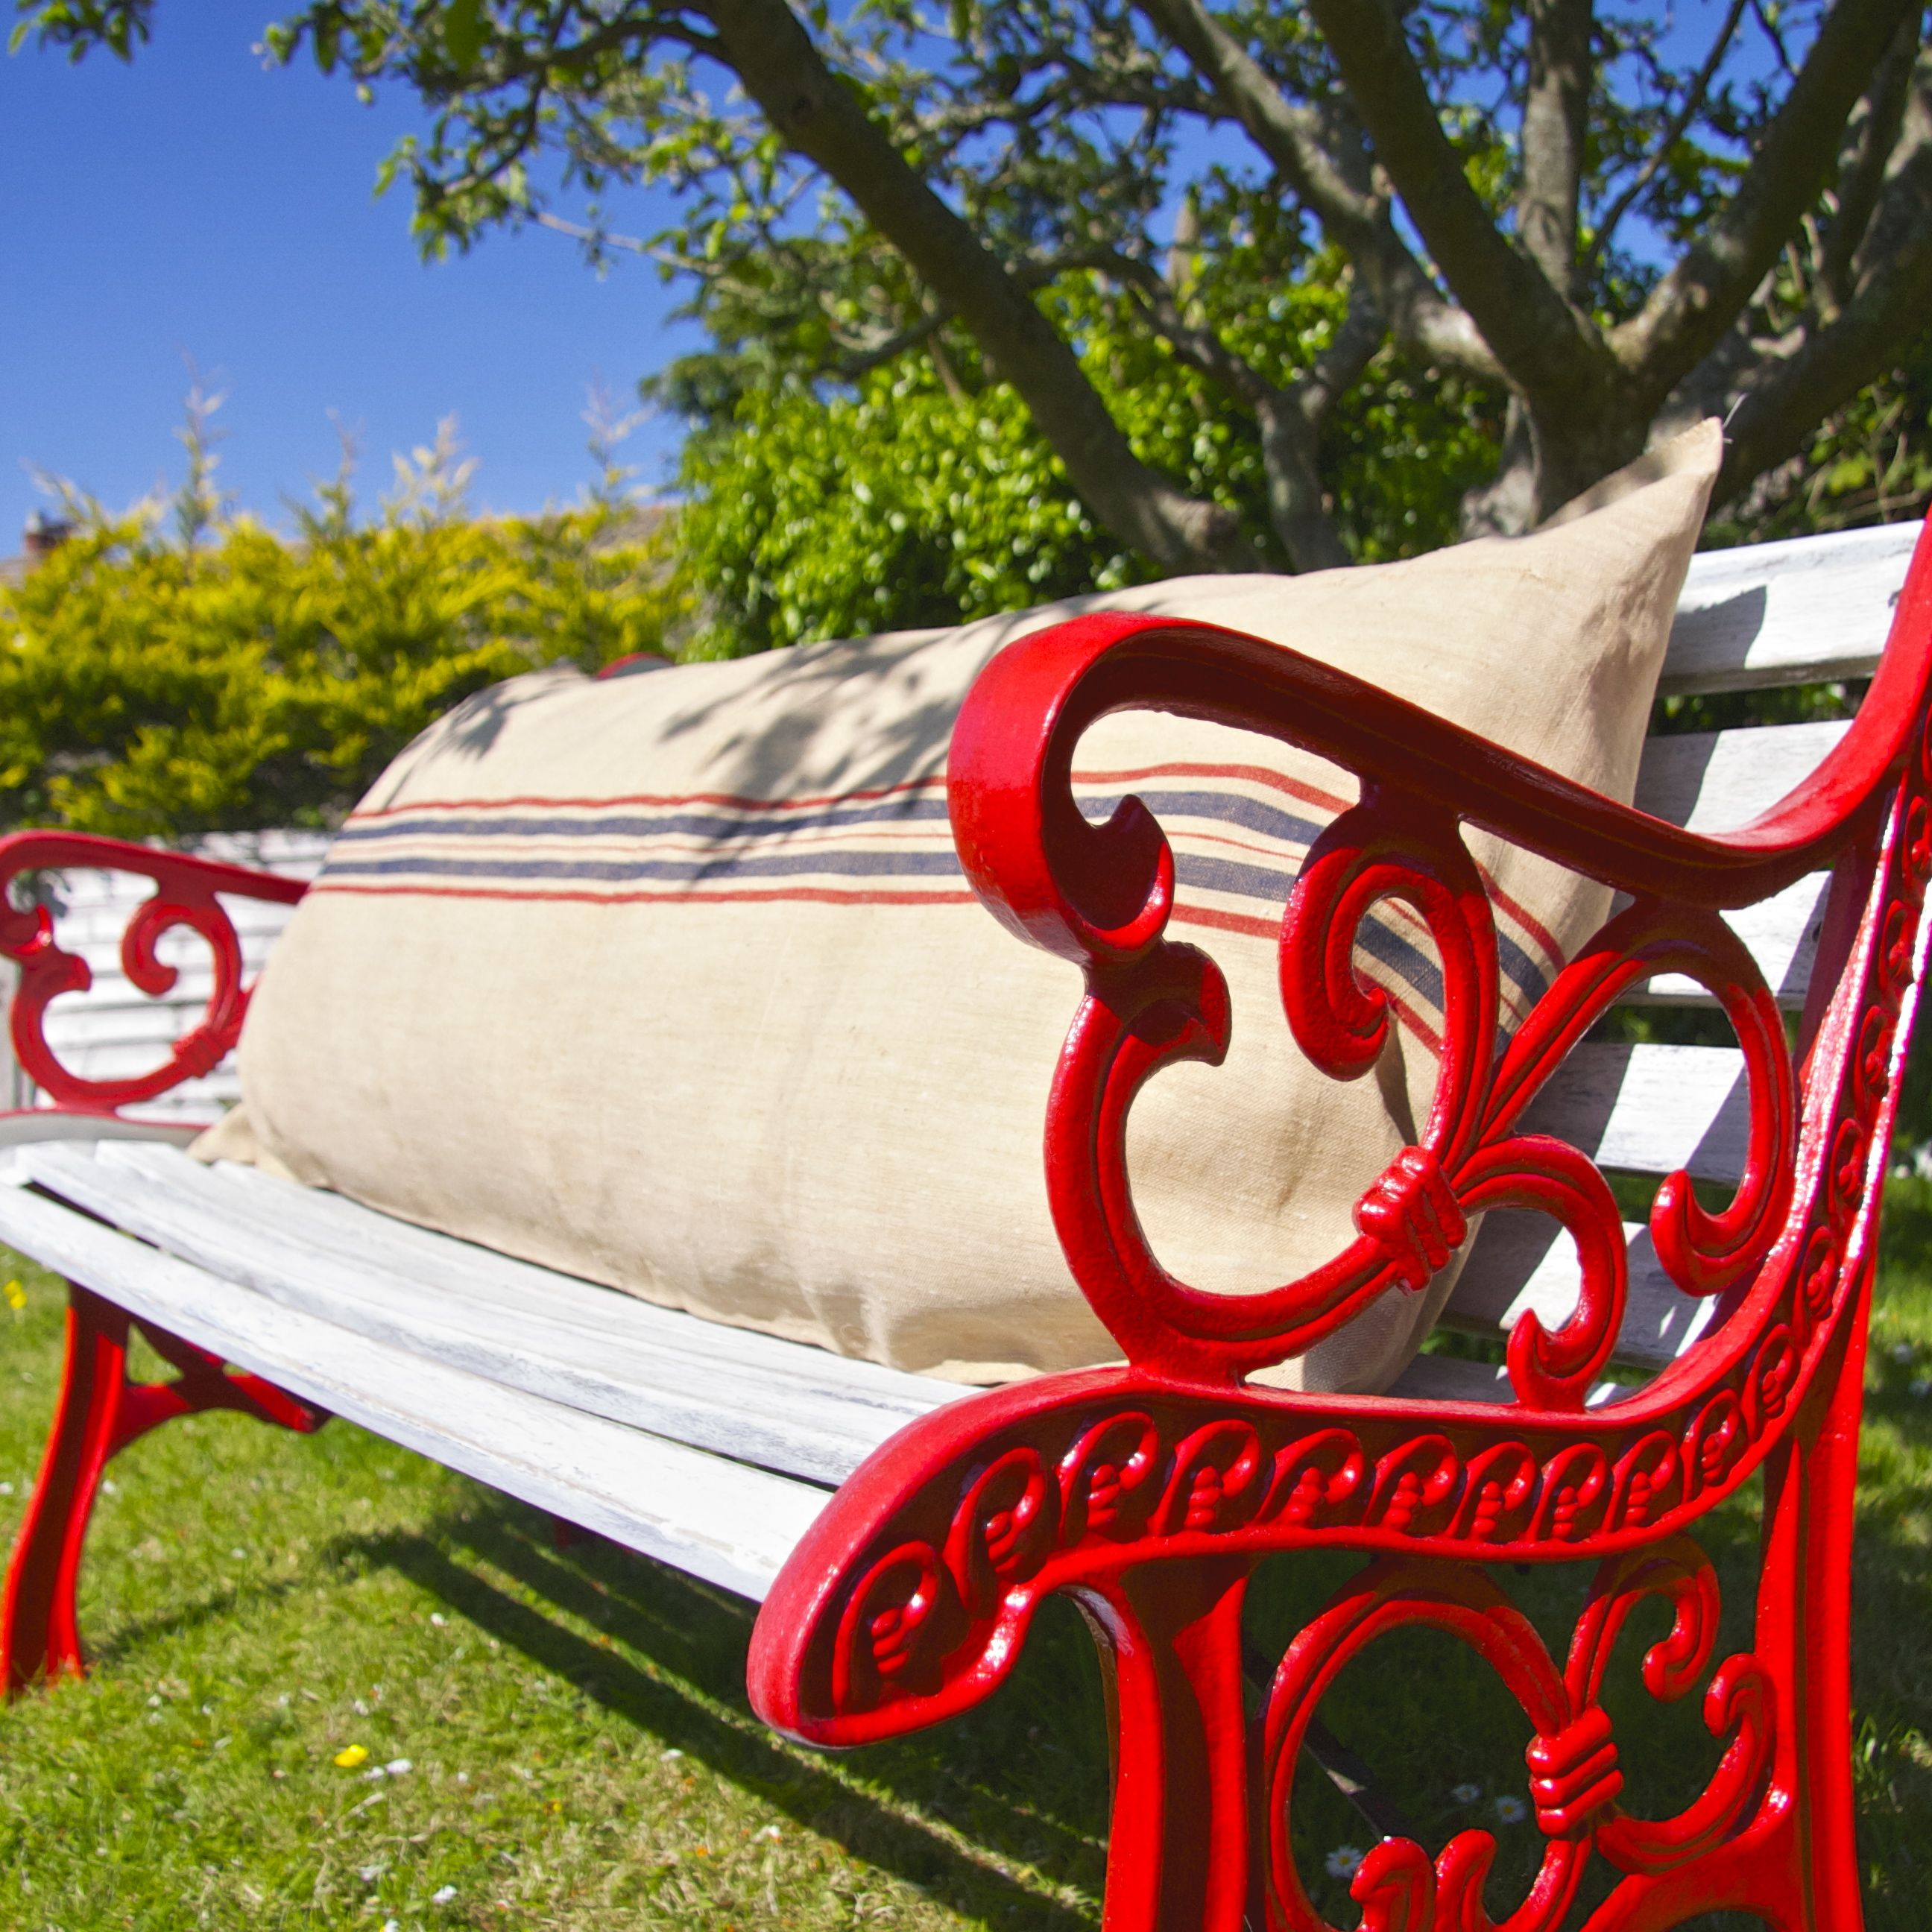 Upcycled Garden Bench Painted Red U0026 White, With Authentic French Grain Sack  Bolster Cushion.